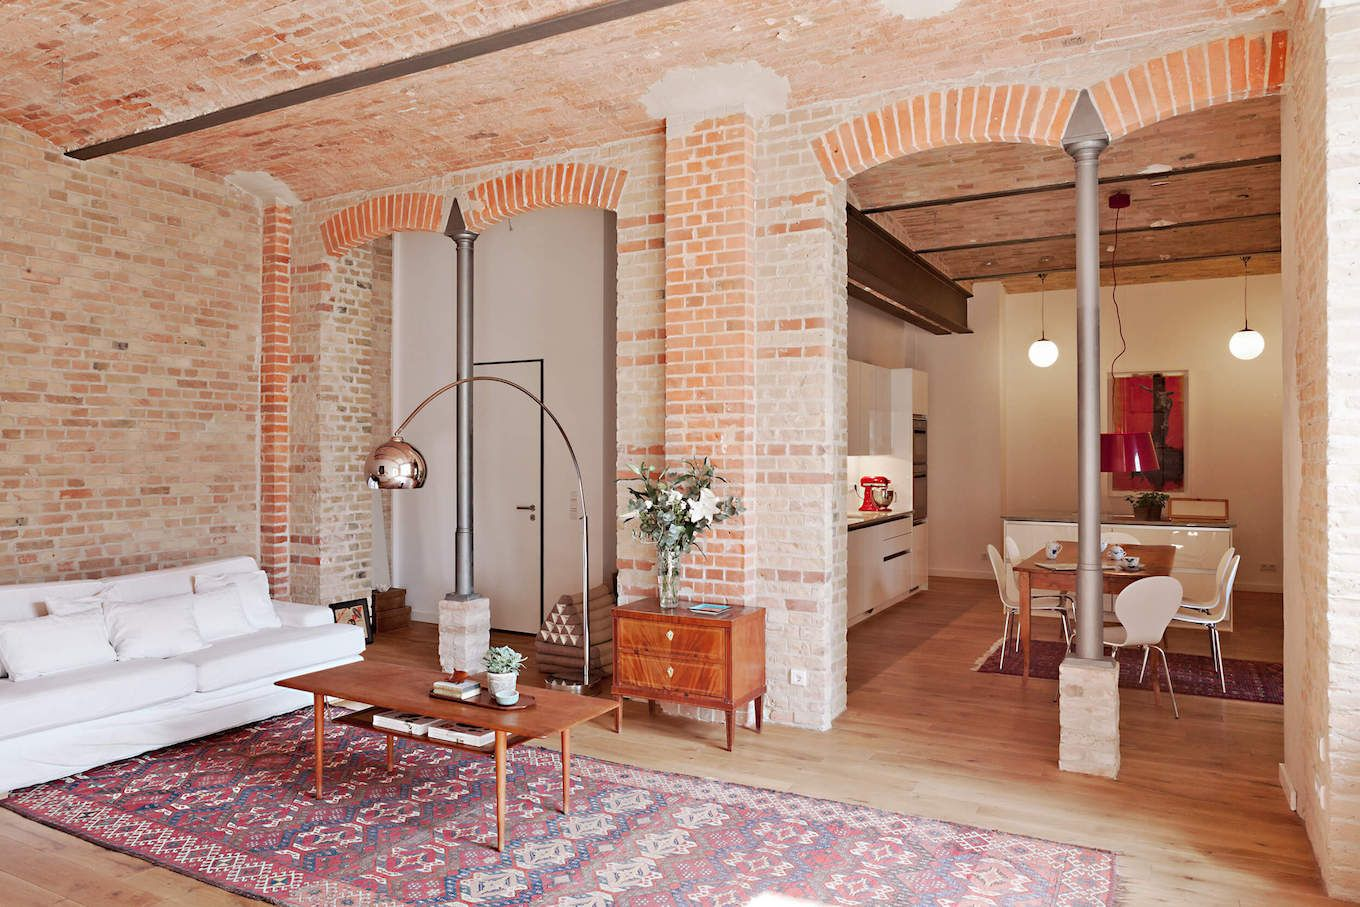 terrific exposed brick bedroom wall ideas   How To Decorate With Exposed Brick Walls   Top Blogs ...